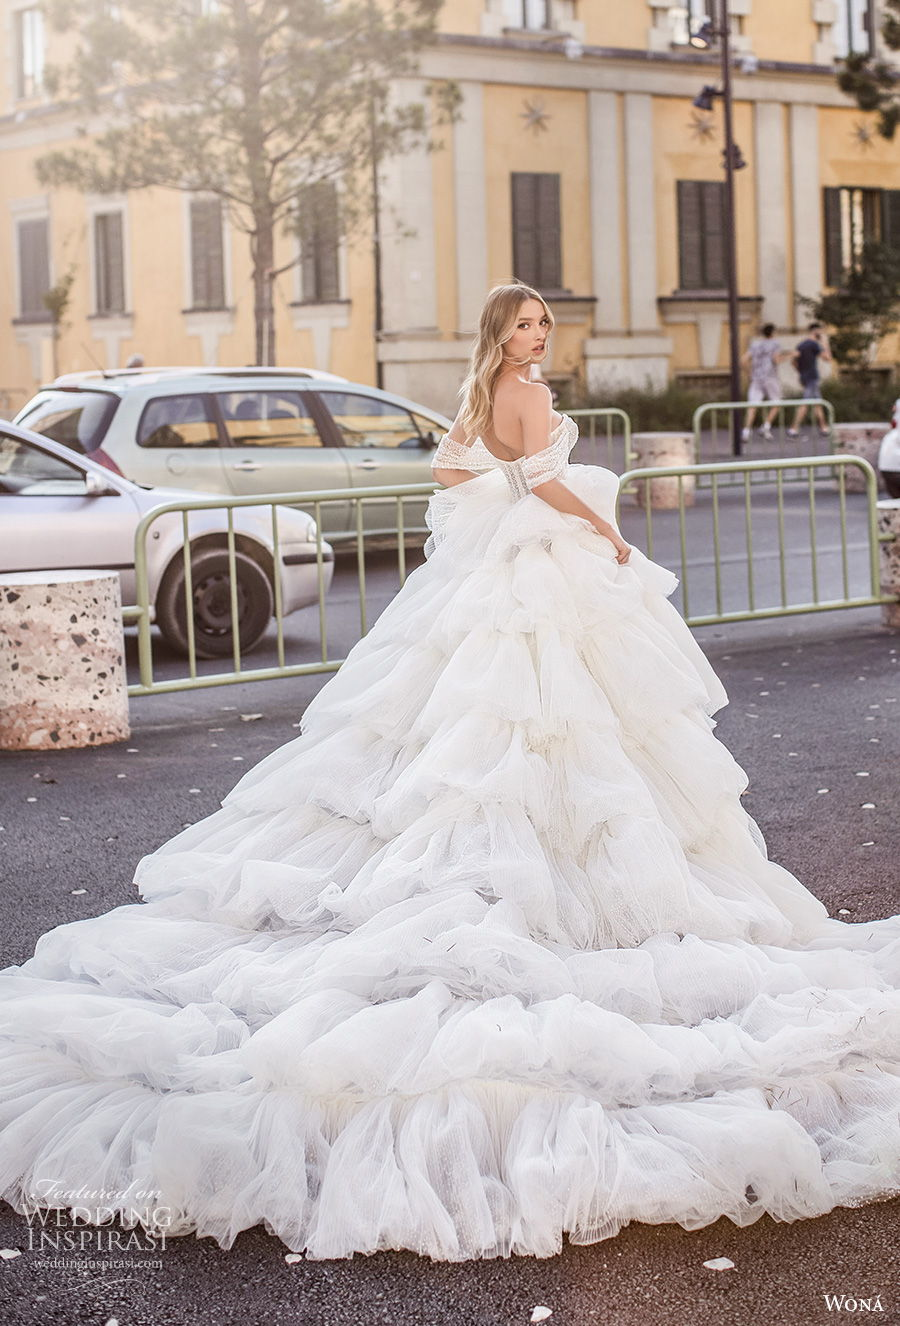 wona 2020 couture bridal off the shoulder sweetheart neckline heavily embellished bodice bustier tiered skirt romantic princess ball gown wedding dress mid back royal train (19) bv